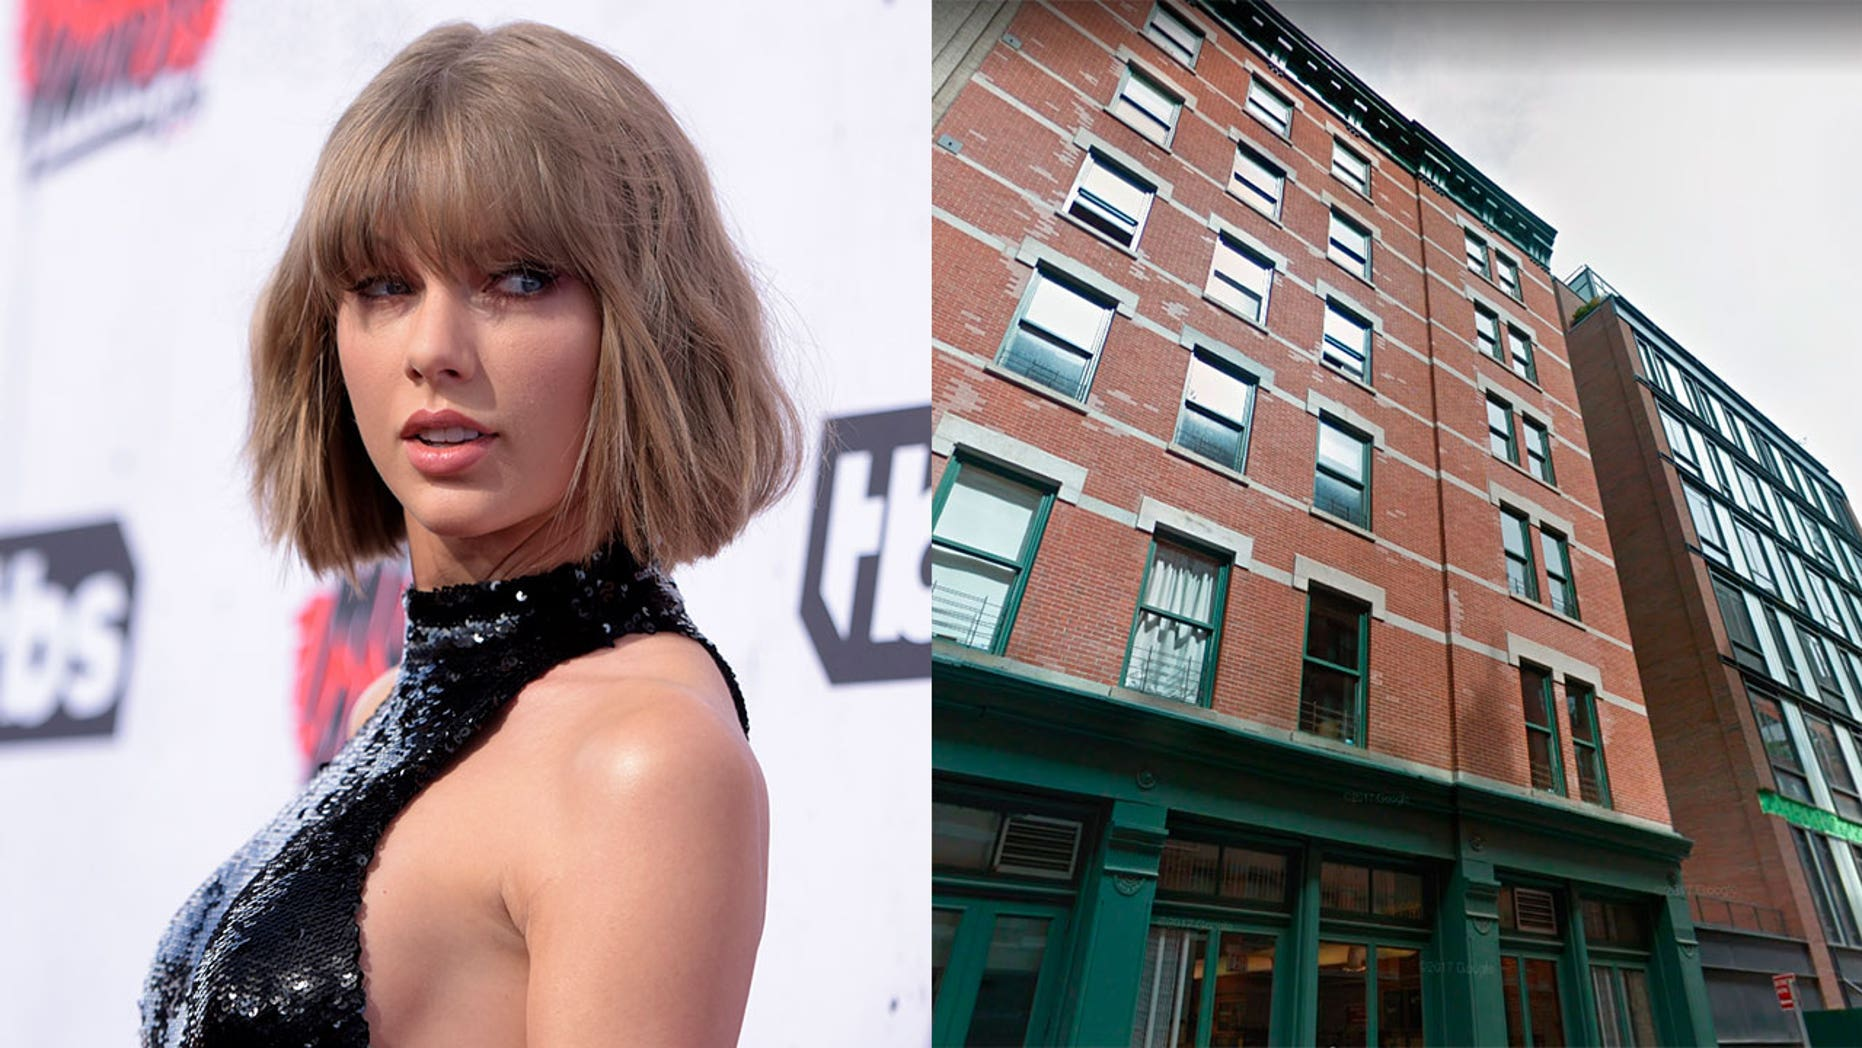 At this point, Taylor Swift can wander into just about any house on Franklin St., confident in knowing that she probably already owns it.